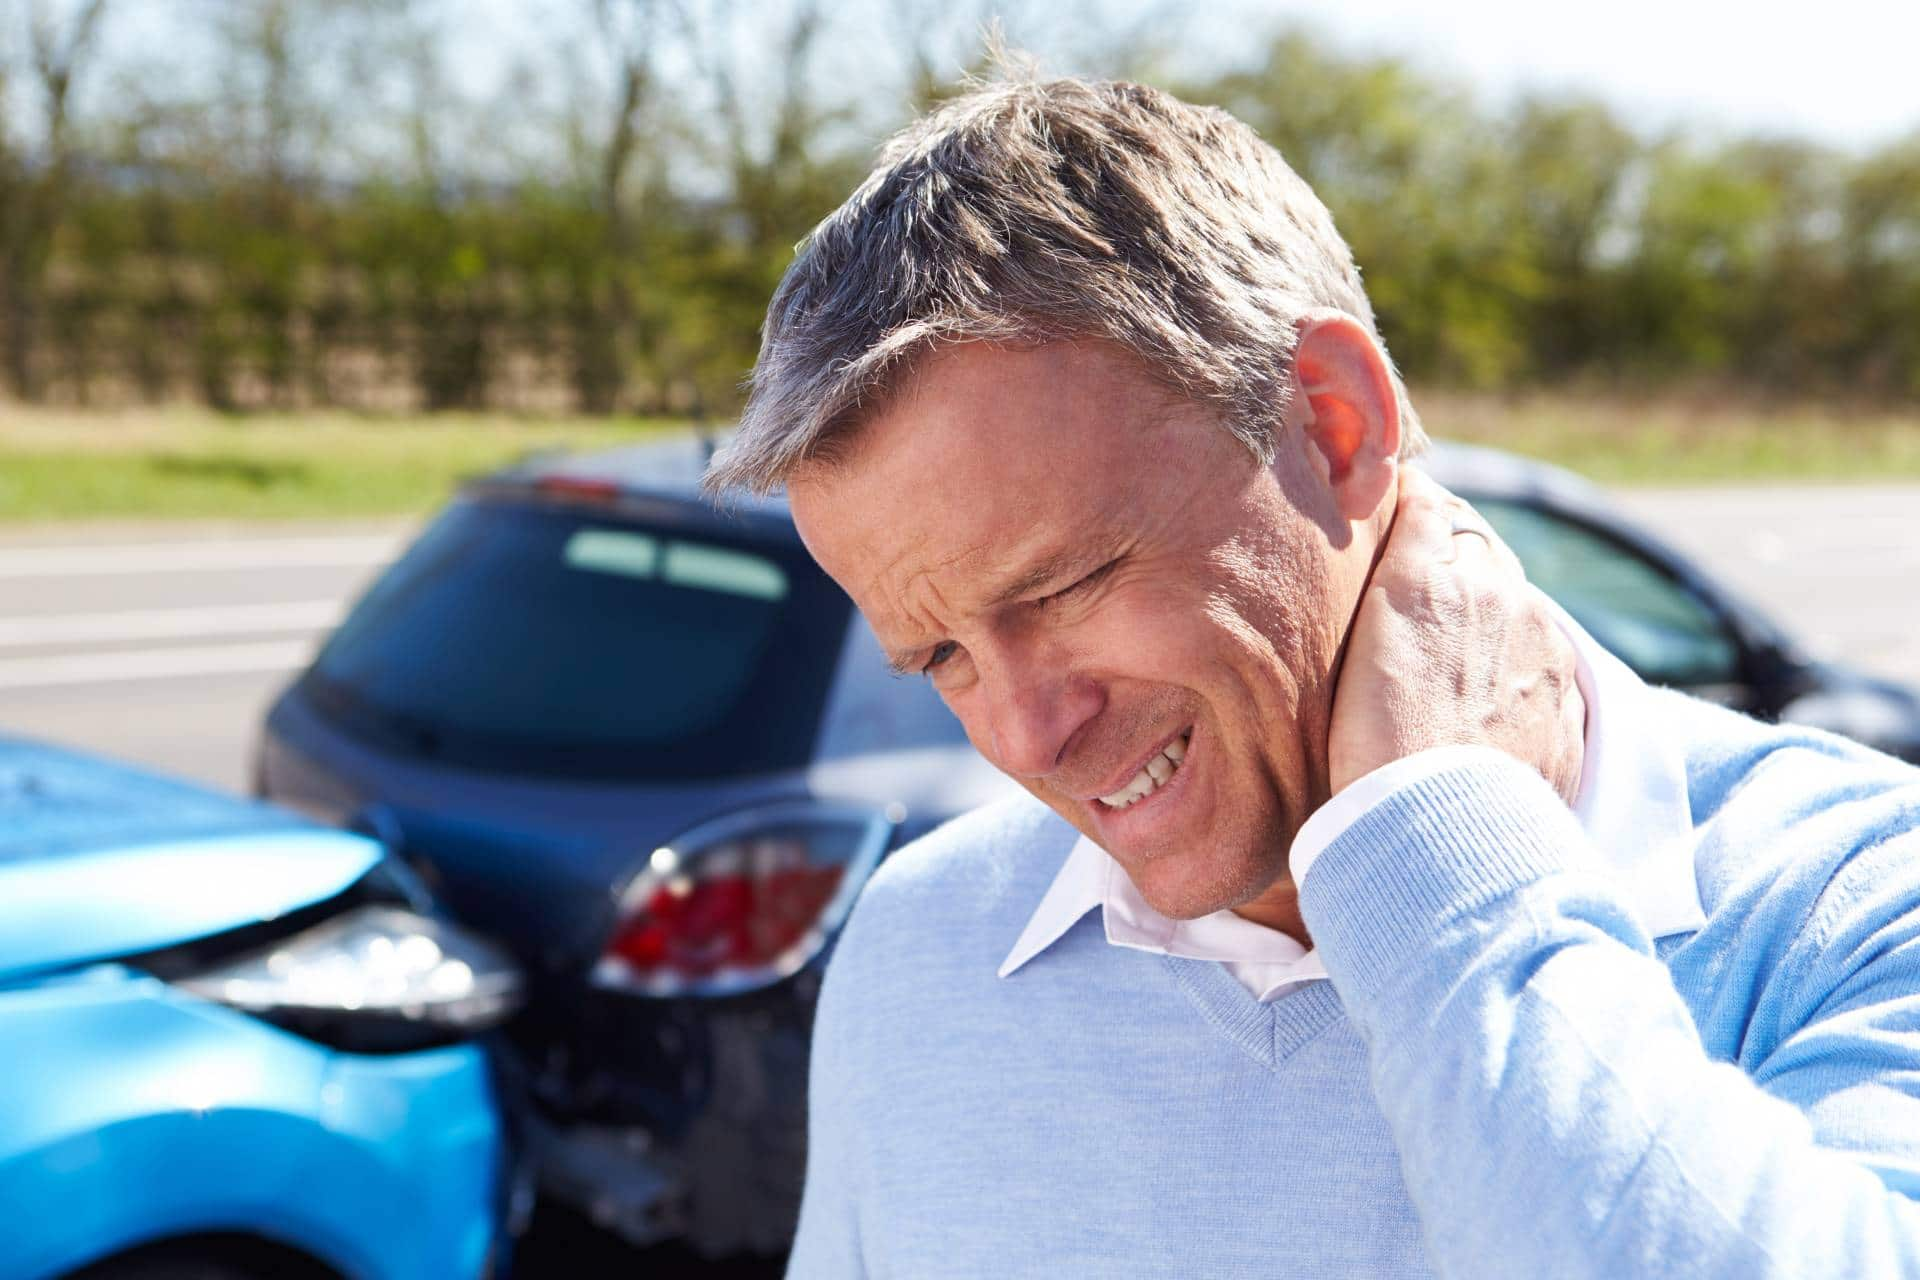 Injured in a car accident? Schedule a free consulation with an Angell Law Firm Personal Injury Lawyer